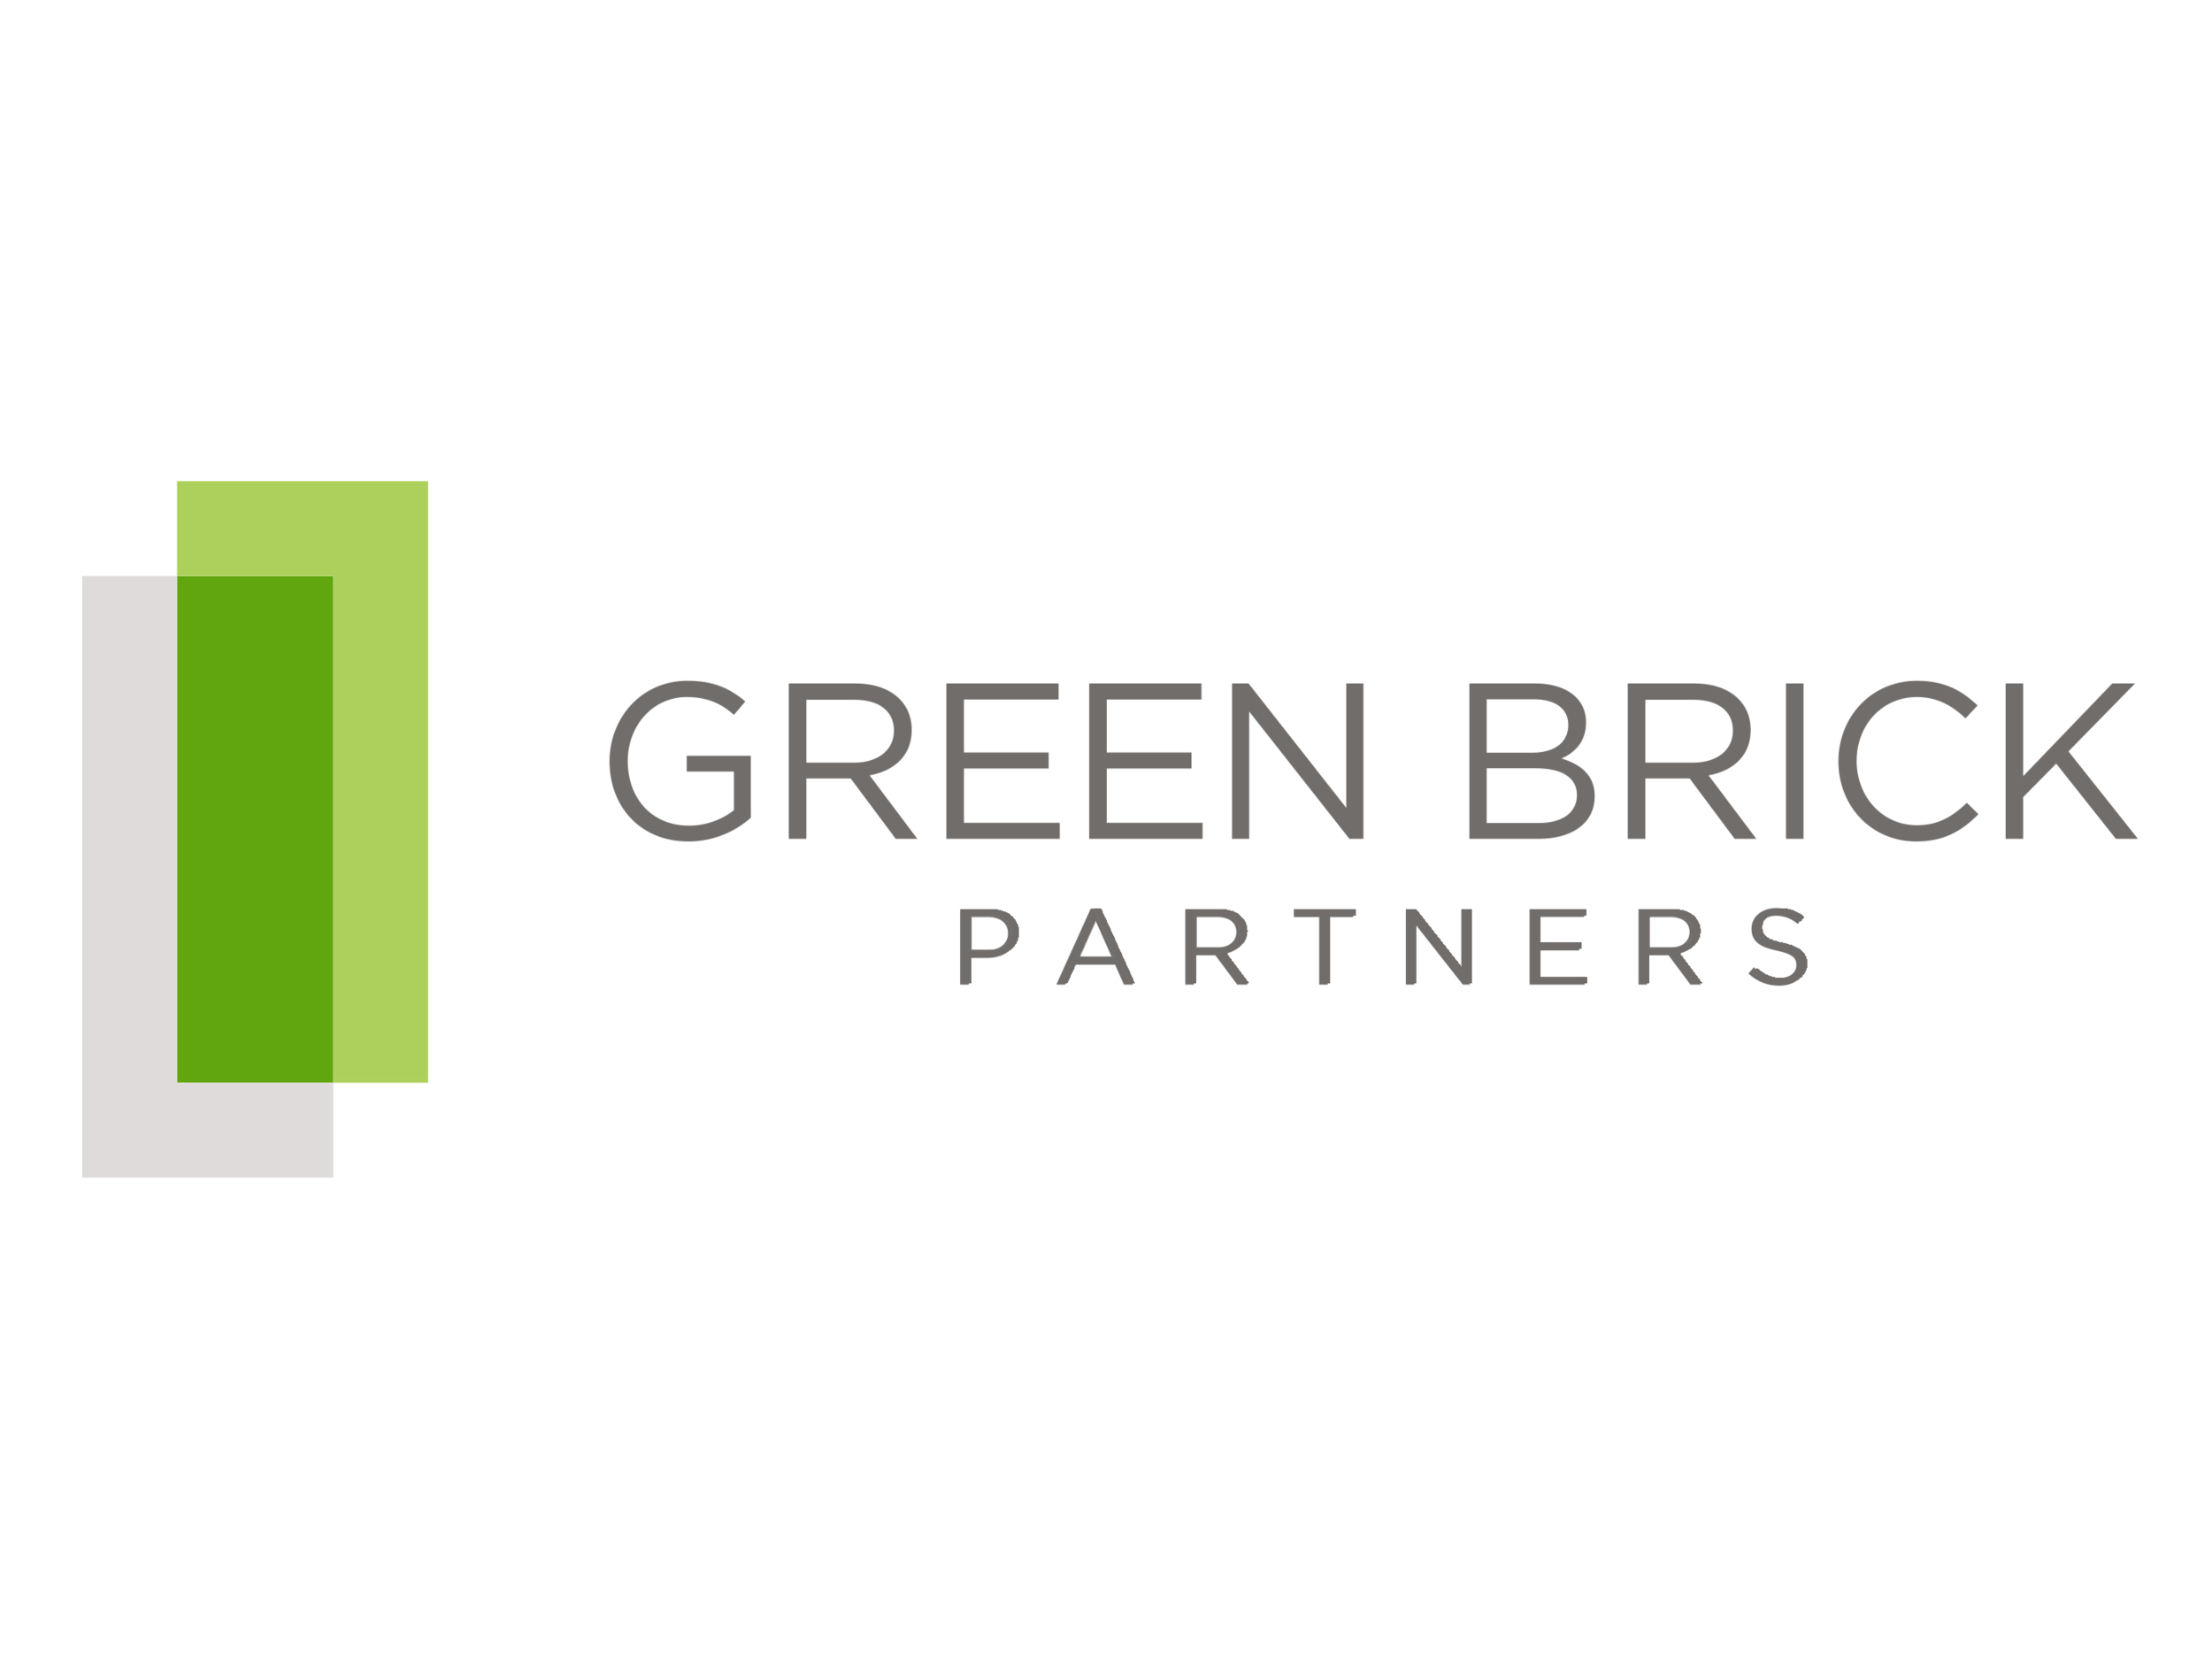 Green Brick Partners 2018.png